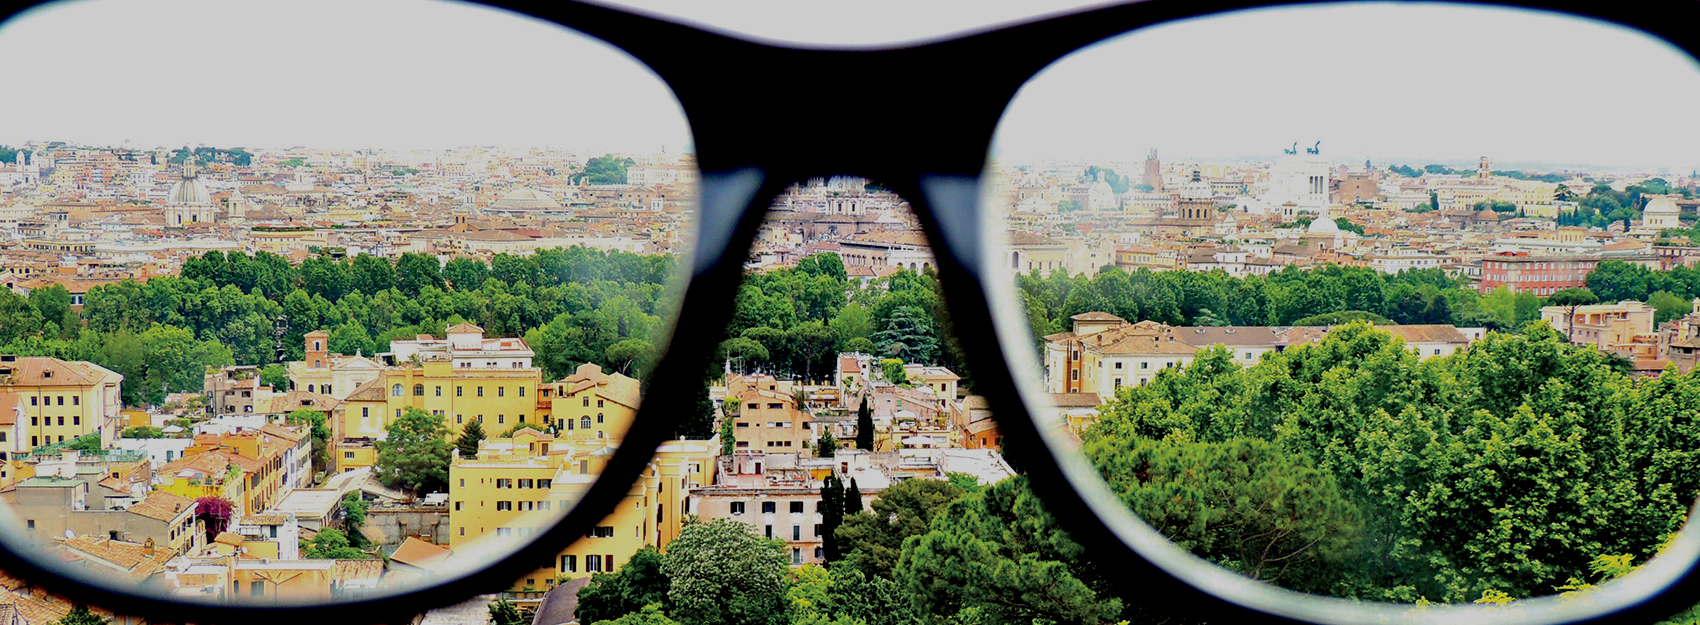 IES Abroad Rome student photo of the city from above looking through black glasses frames